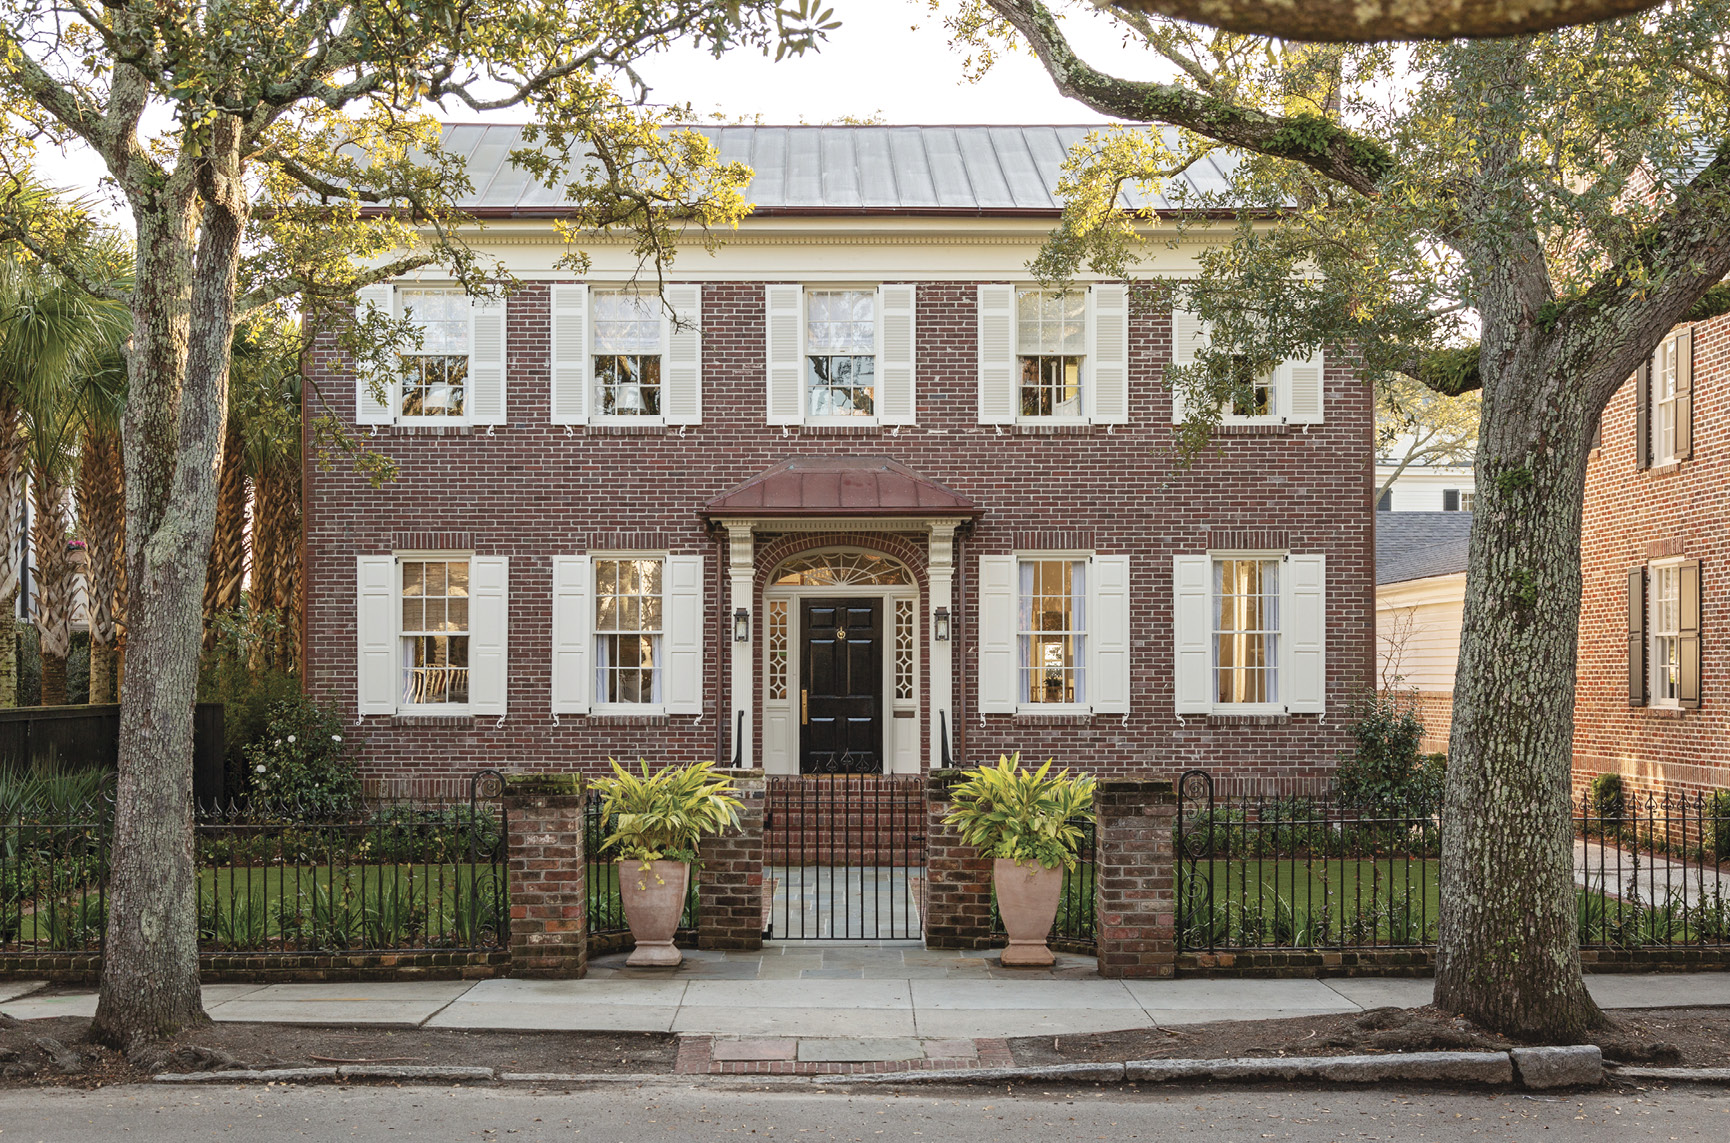 """HIP TO BE SQUARE: Working with an architect, a builder, and an interior designer, Cate and Hugh Leatherman updated a boxy brick Colonial-style house South of Broad to suit their brood.   """"I love how neighborhoody it feels here,"""" says Cate, who grew up around the corner. """"It has a family vibe."""""""